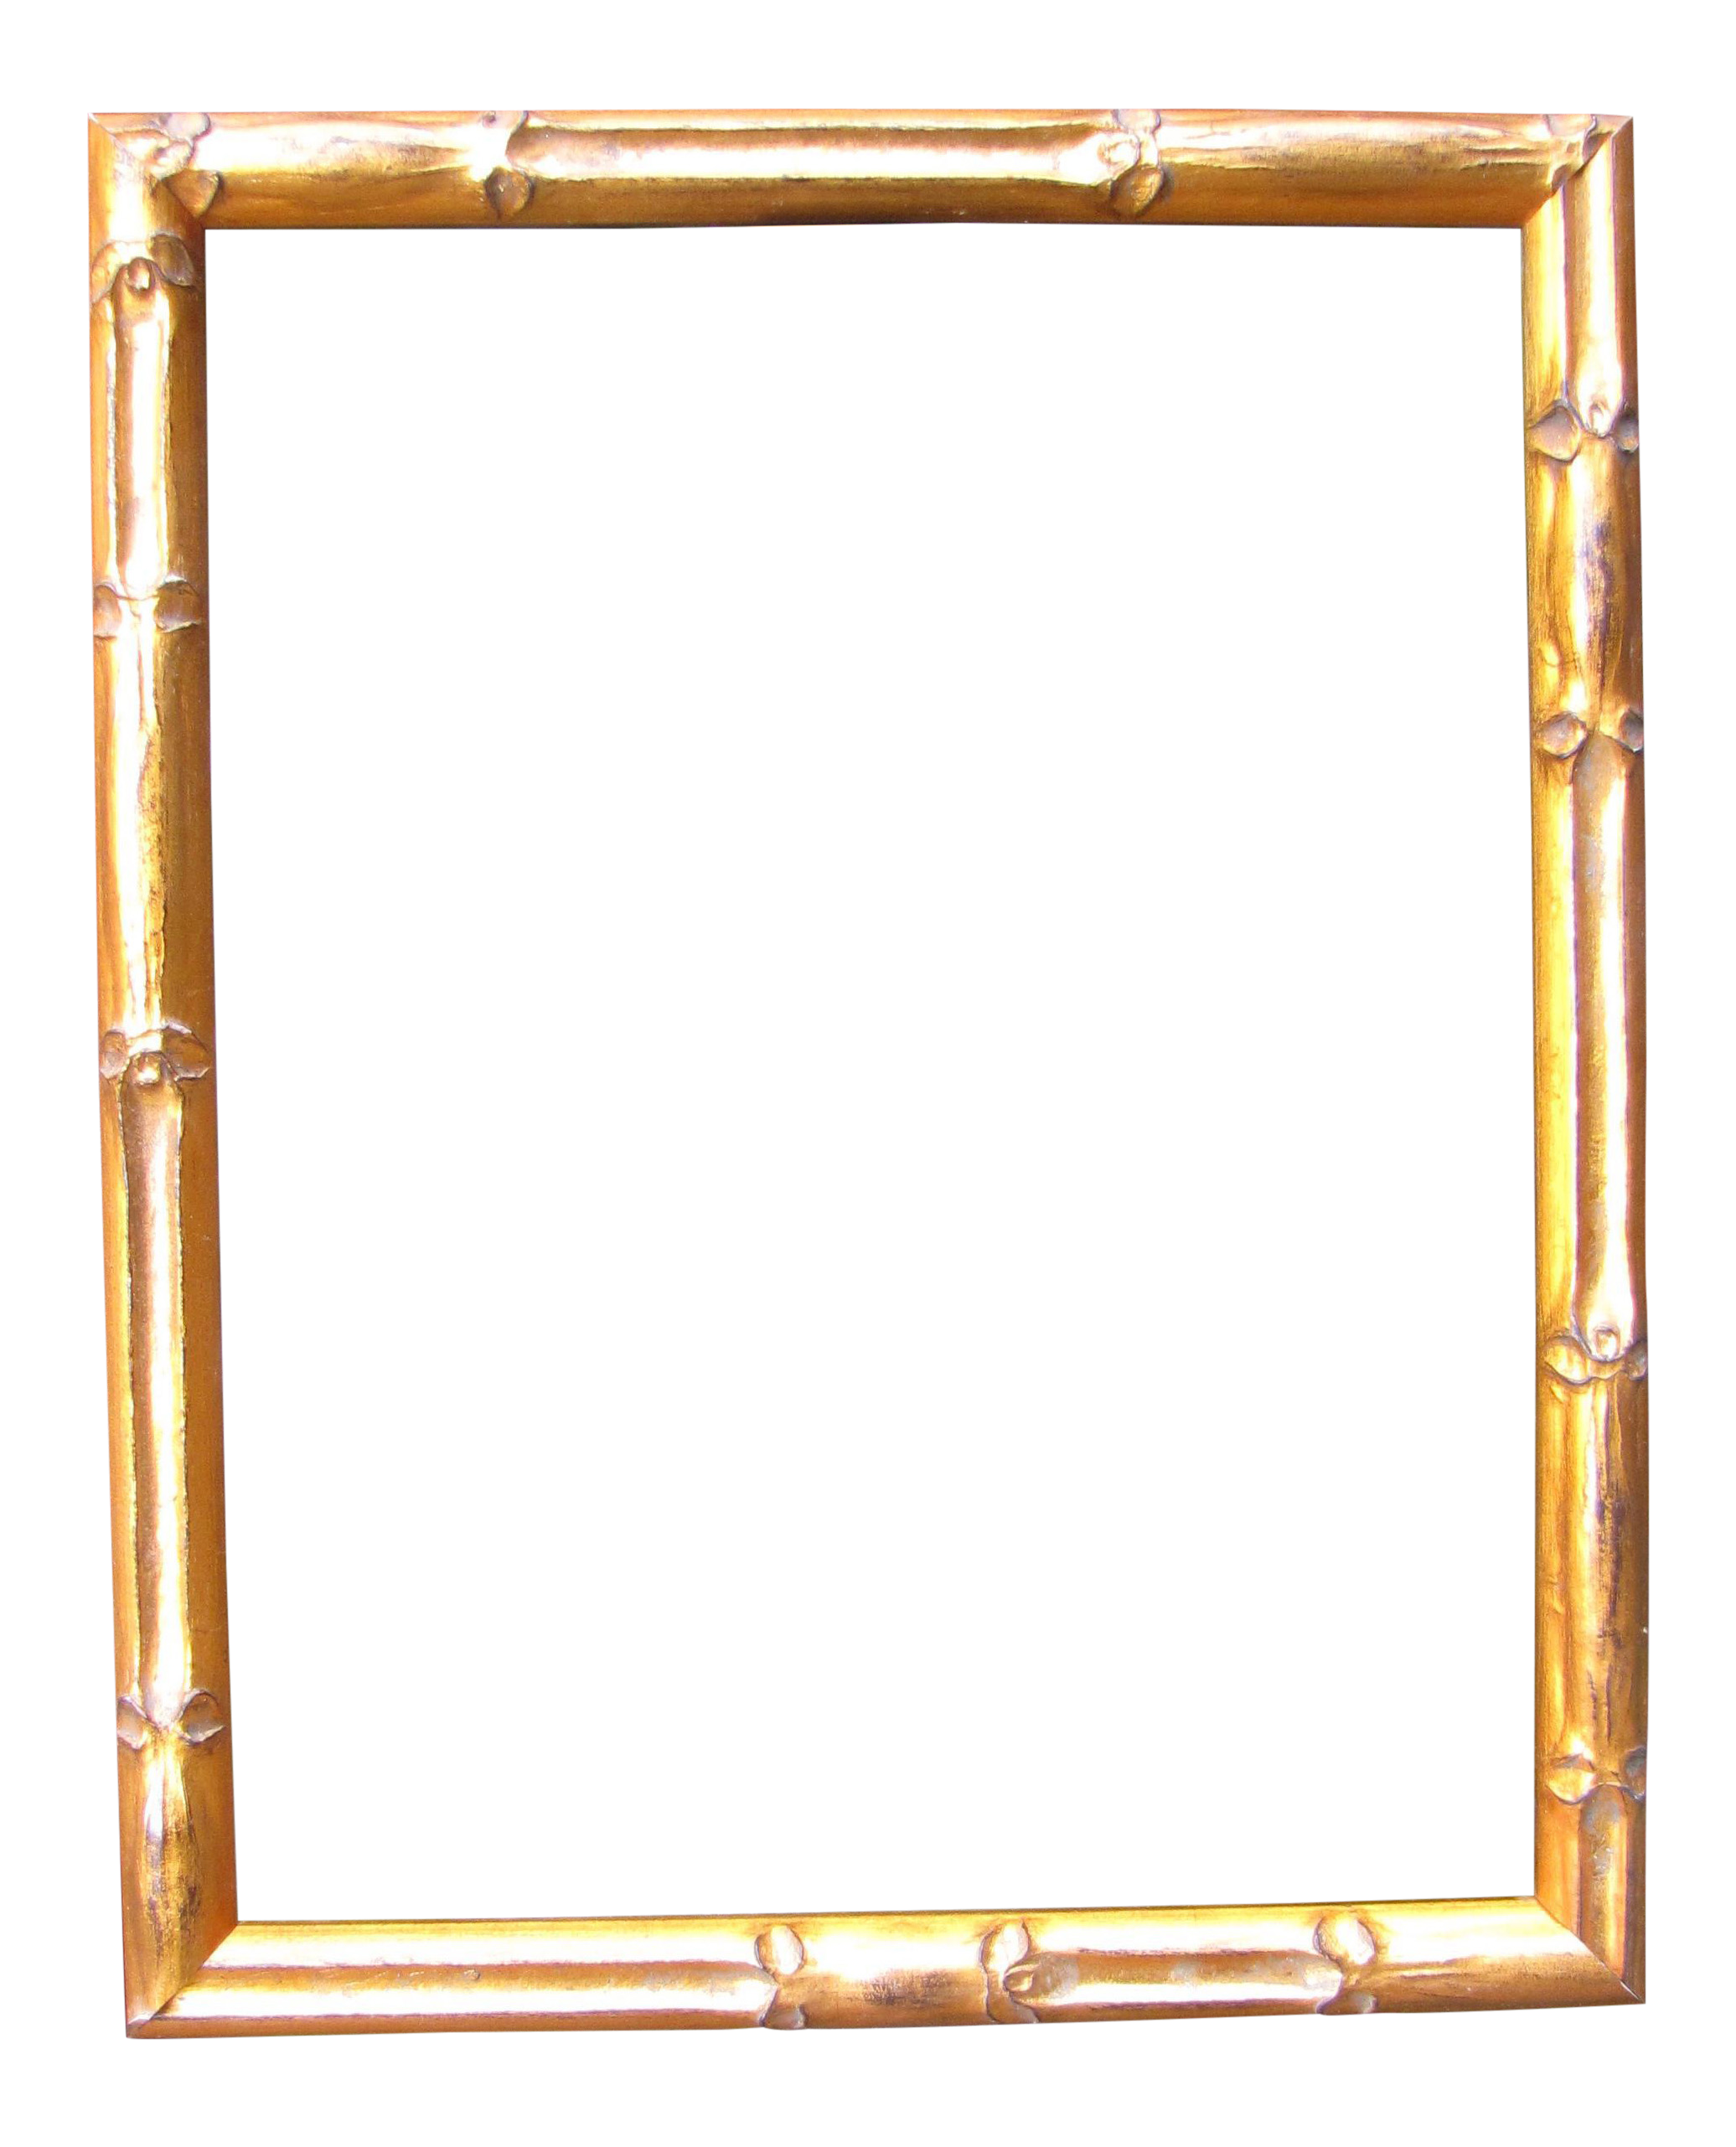 Bamboo frame png. Gold picture